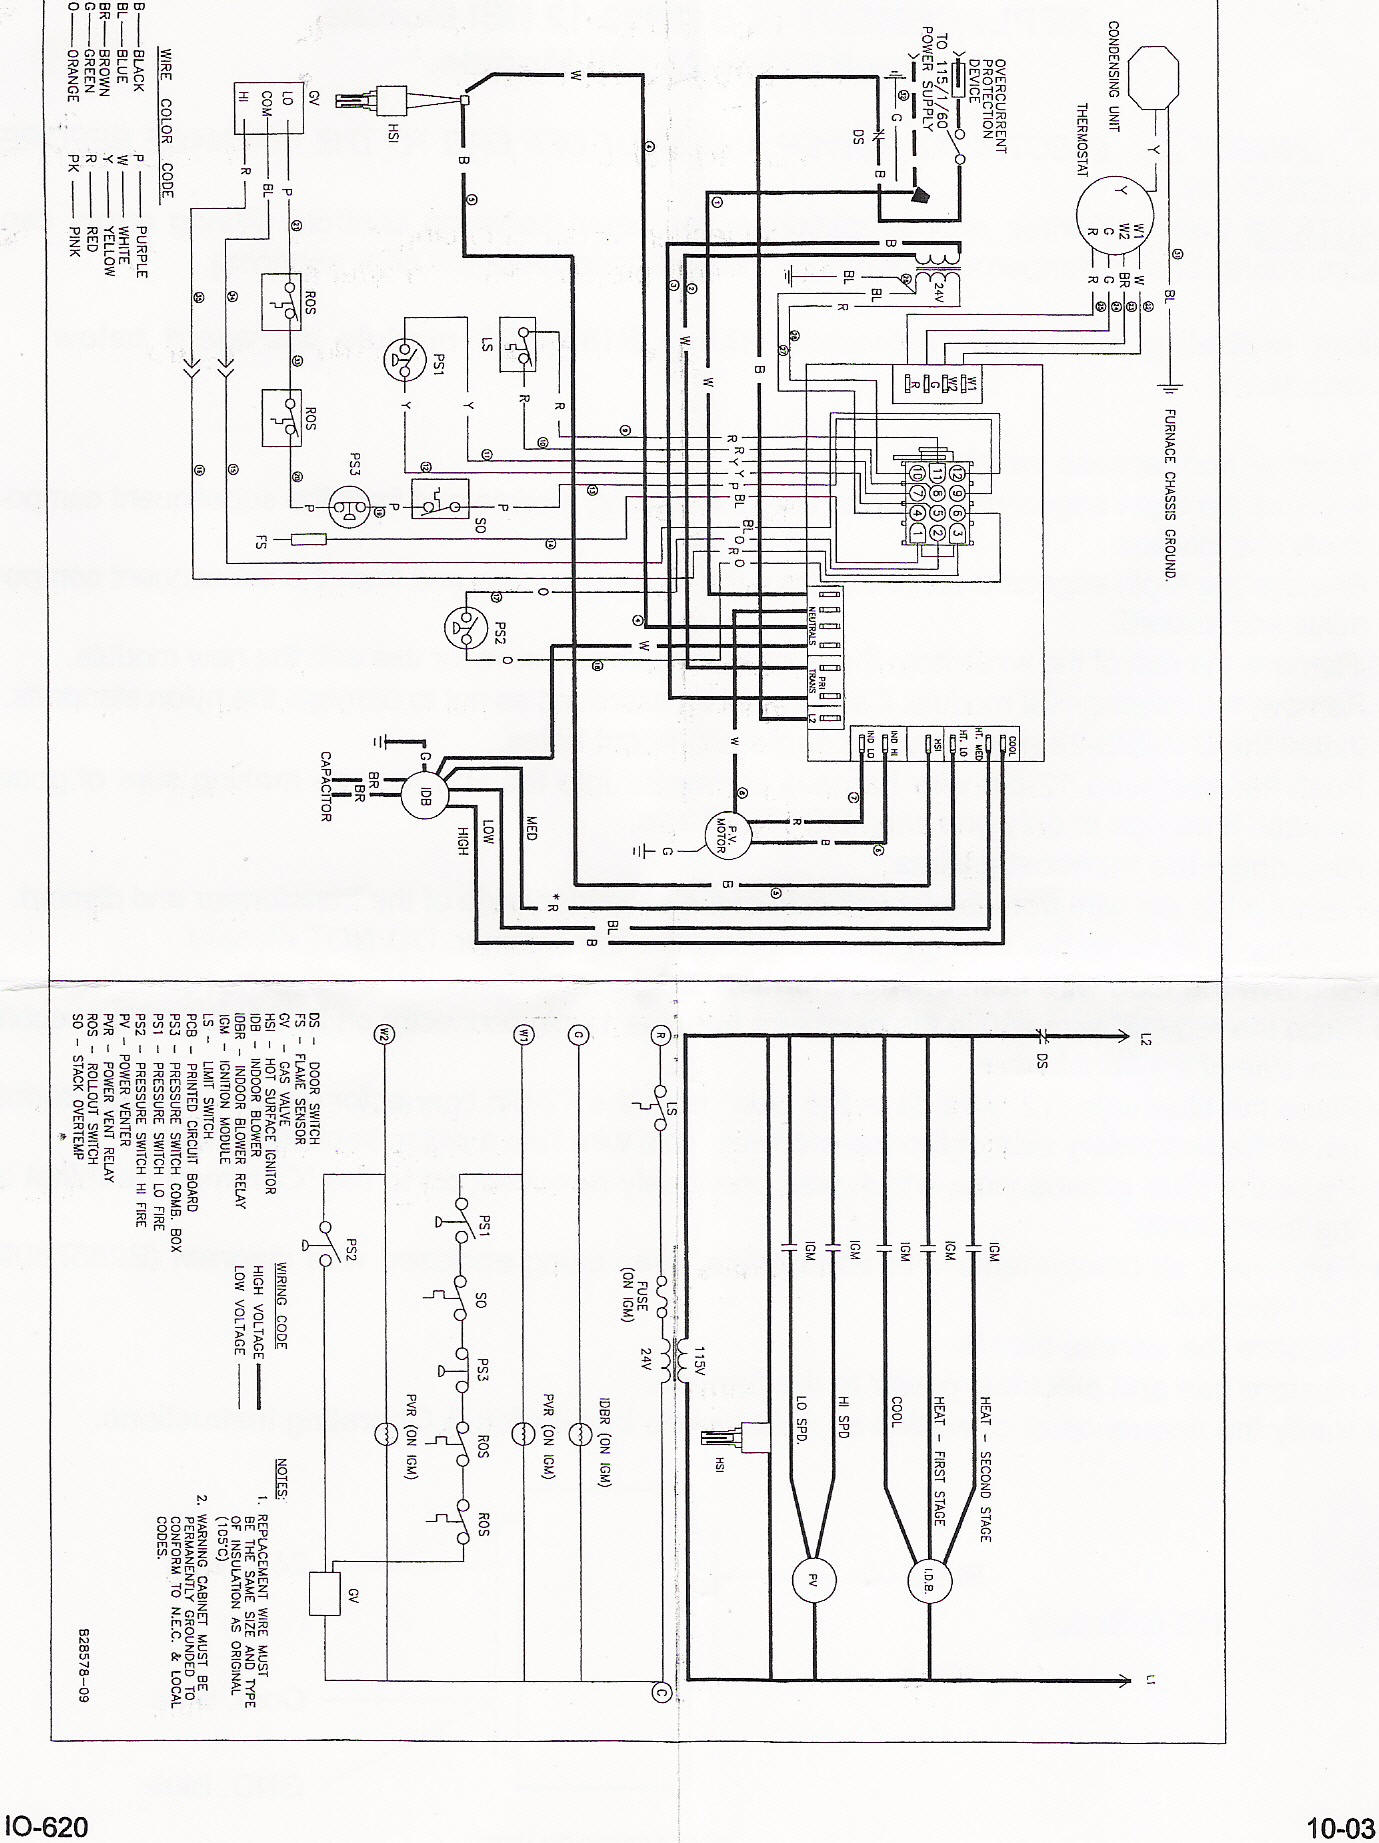 goodma2 instr ruud thermostat wiring diagram ruud wiring diagram schematic heat pump condenser wiring diagram at gsmportal.co